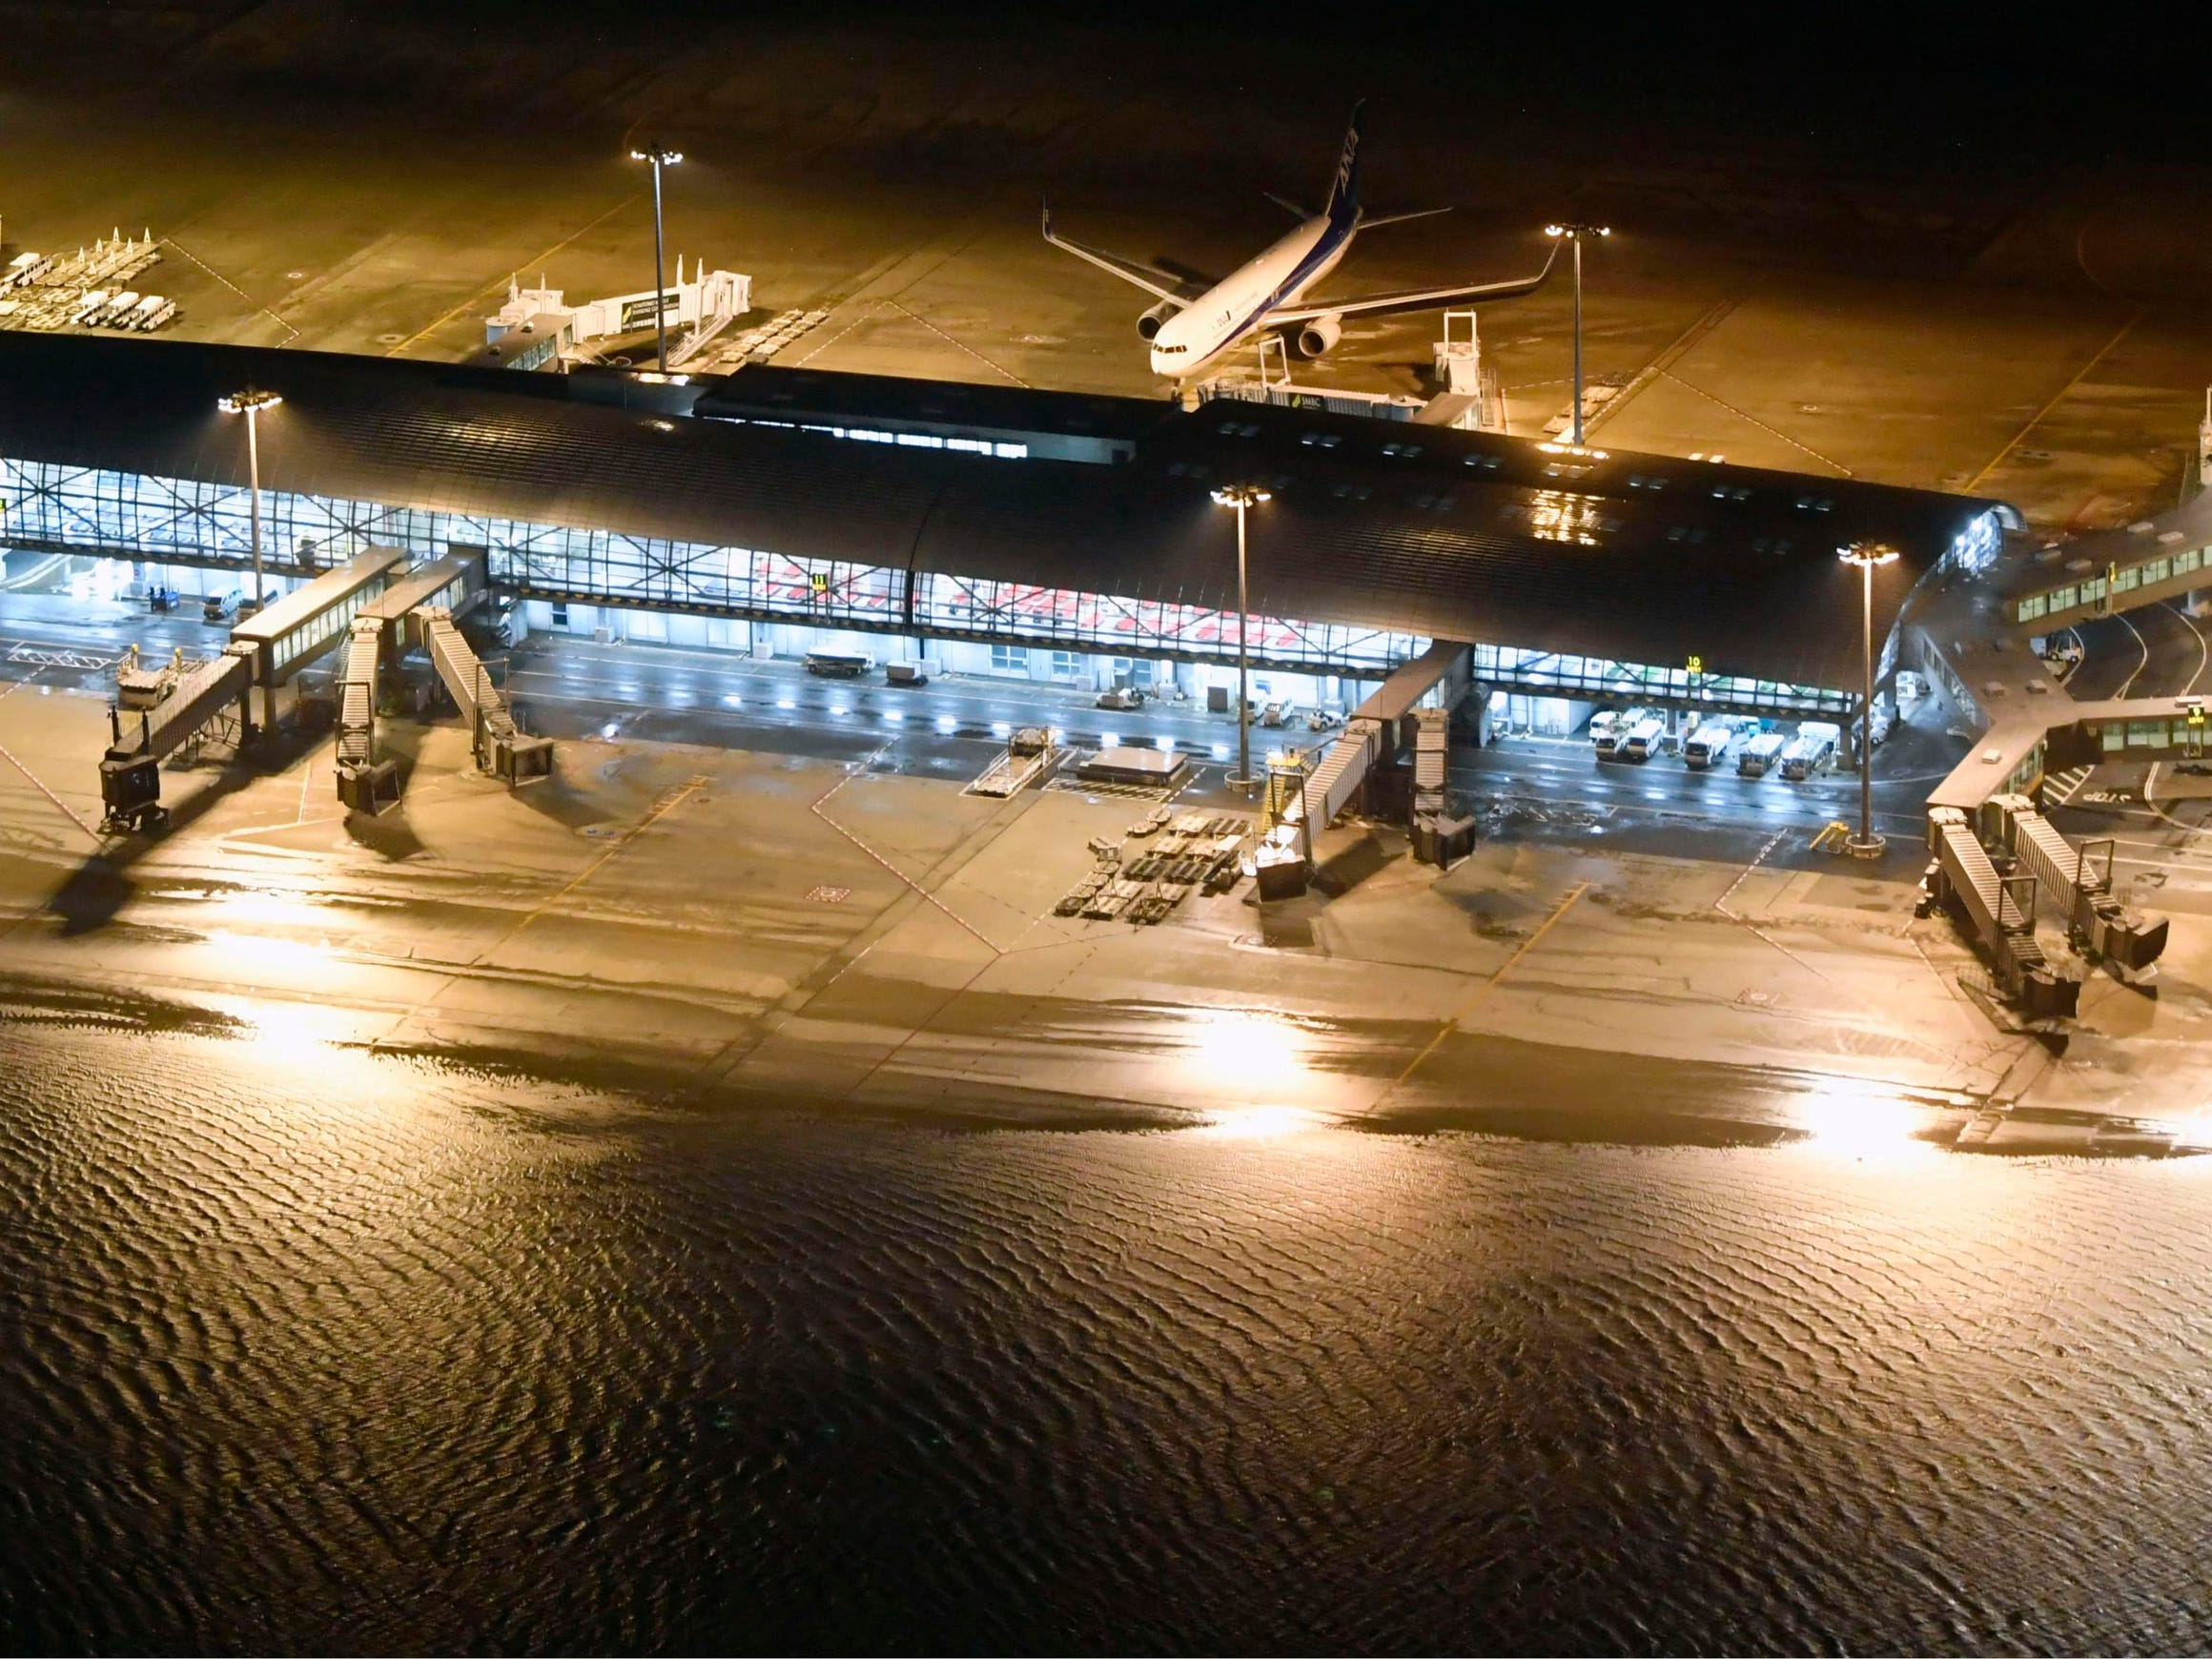 Kansai International Airport partially is flooded by typhoon Jebi in Osaka, western Japan, Tuesday, Sept. 4, 2018. A powerful typhoon blew through western Japan on Tuesday, causing heavy rain to flood the region's main offshore international airport and high winds to blow a tanker into a connecting bridge, disrupting land and air travel. (Nobuki Ito/Kyodo News via AP) ORG XMIT: XEH803